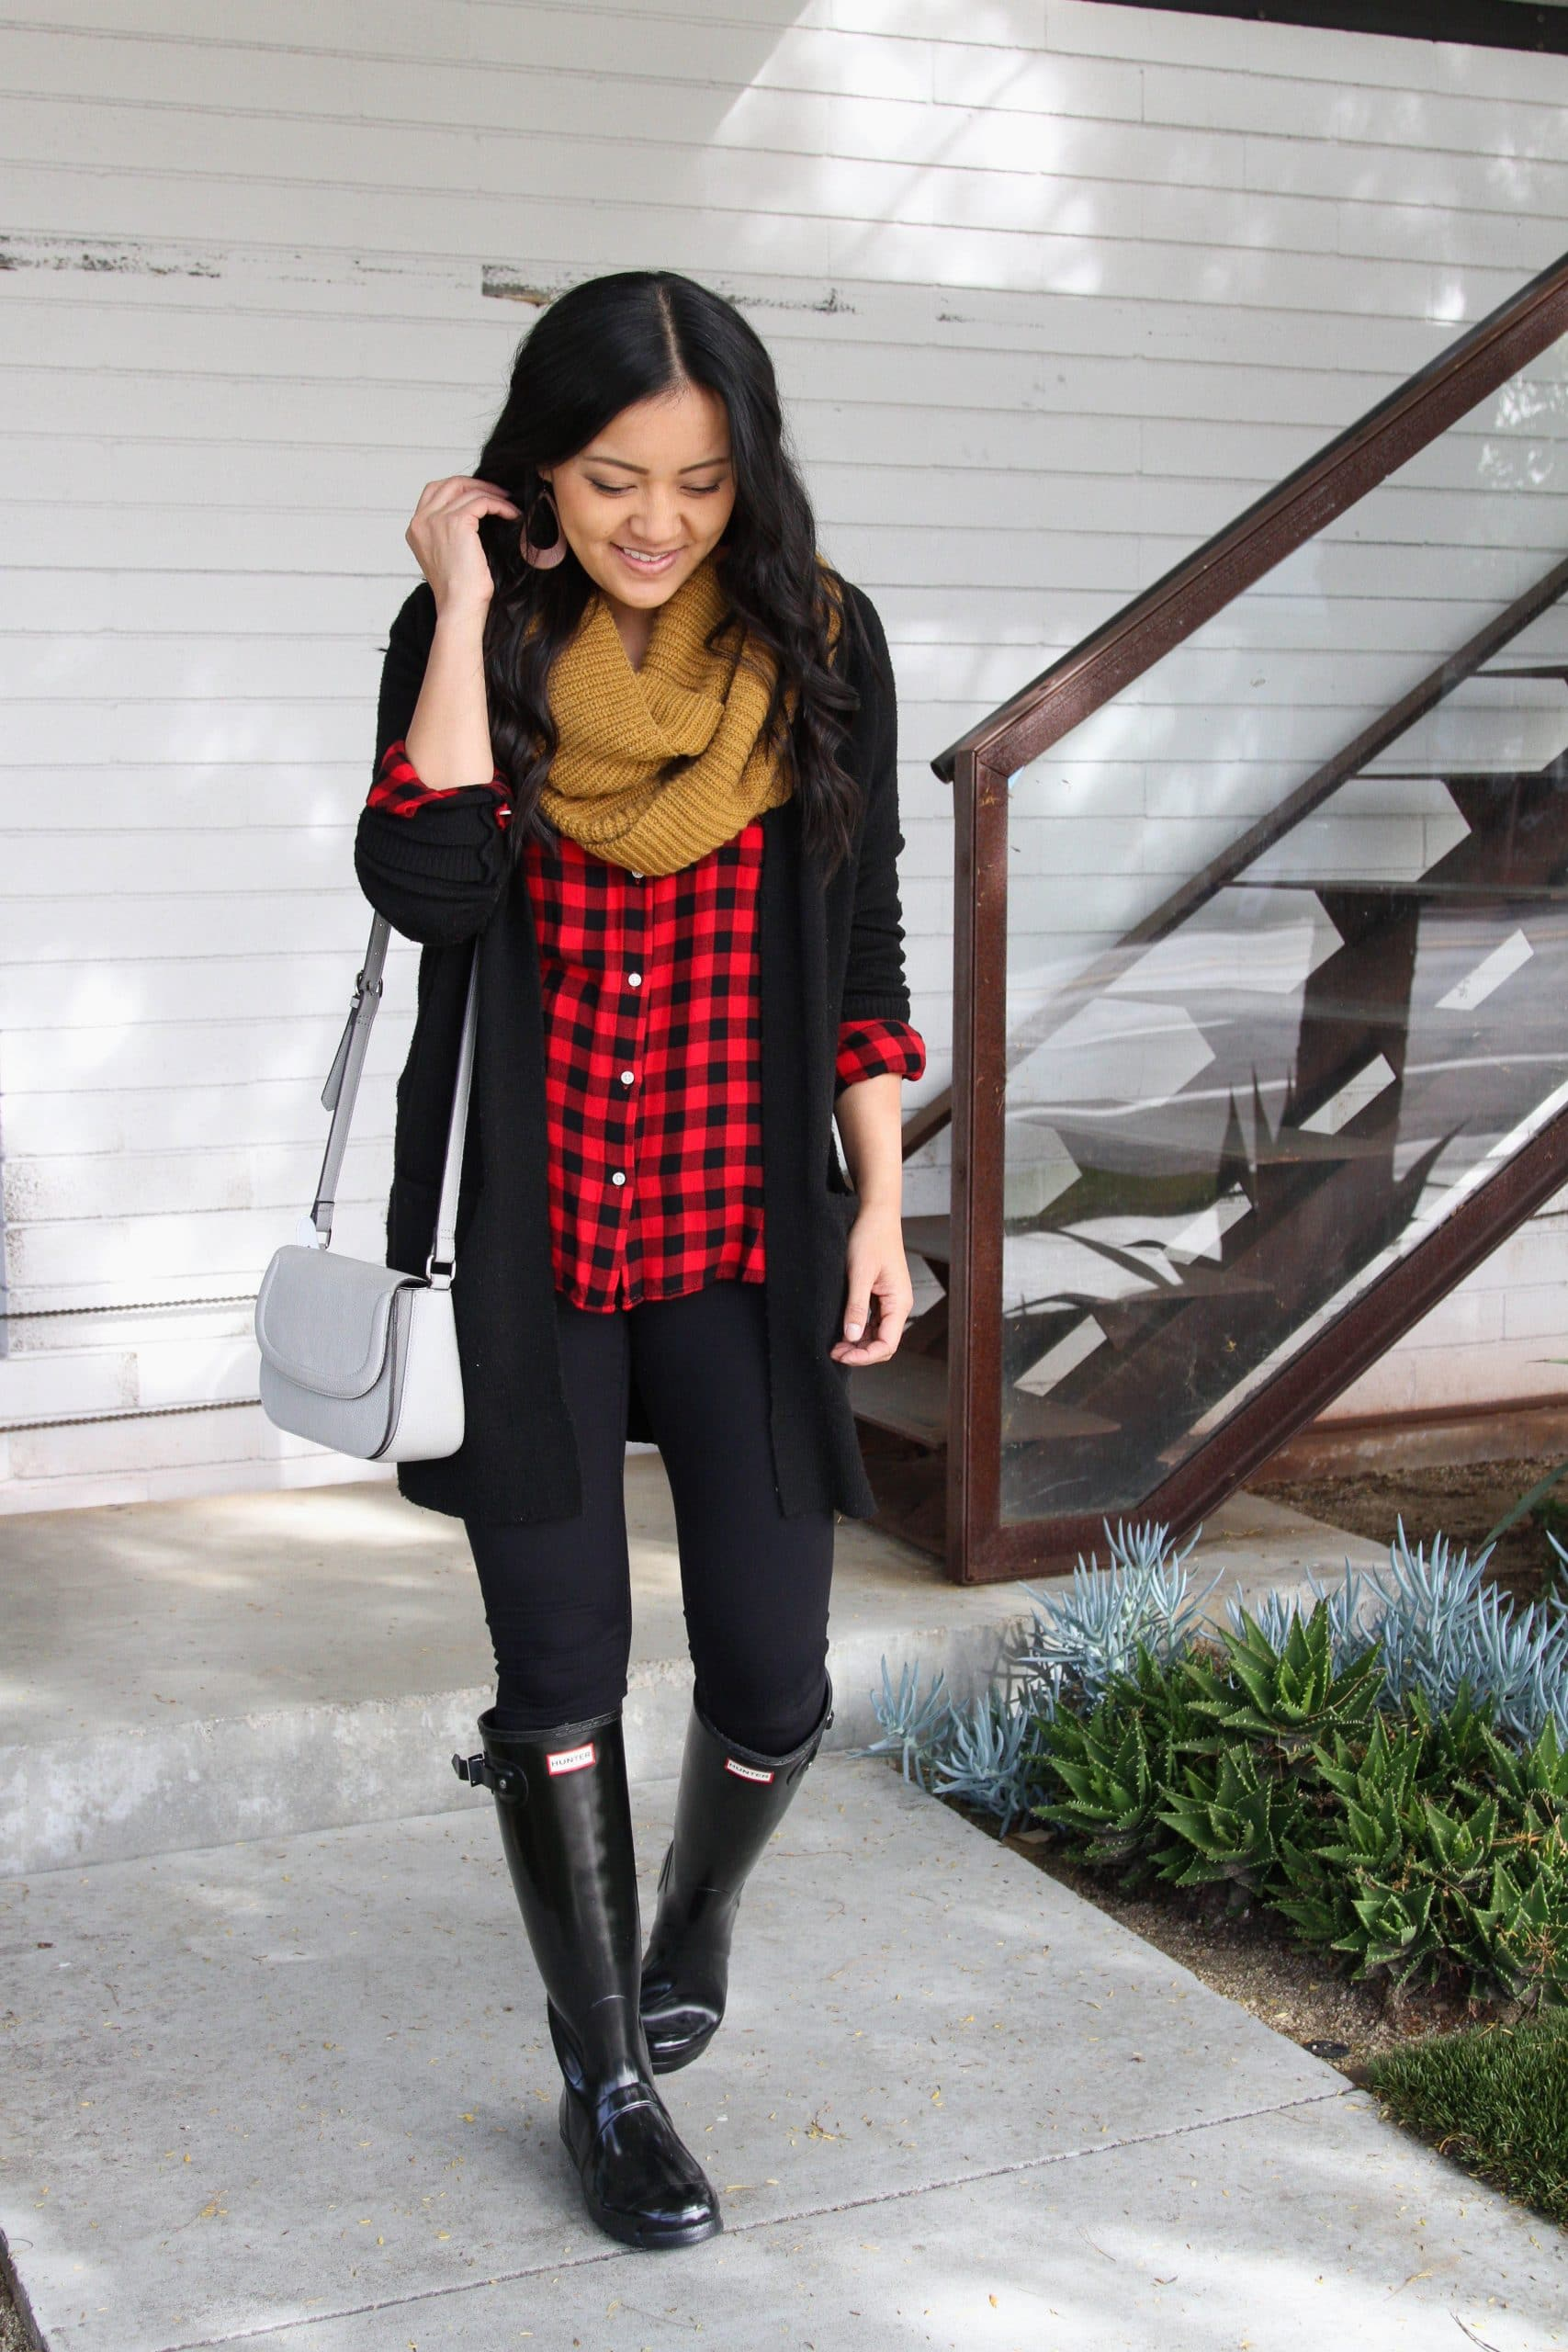 Winter Leggings Outfit: red buffalo plaid shirt + black leggings + black cardigan + black rain boots + mustard infinity scarf + gray crossbody purse + brown leather earrings